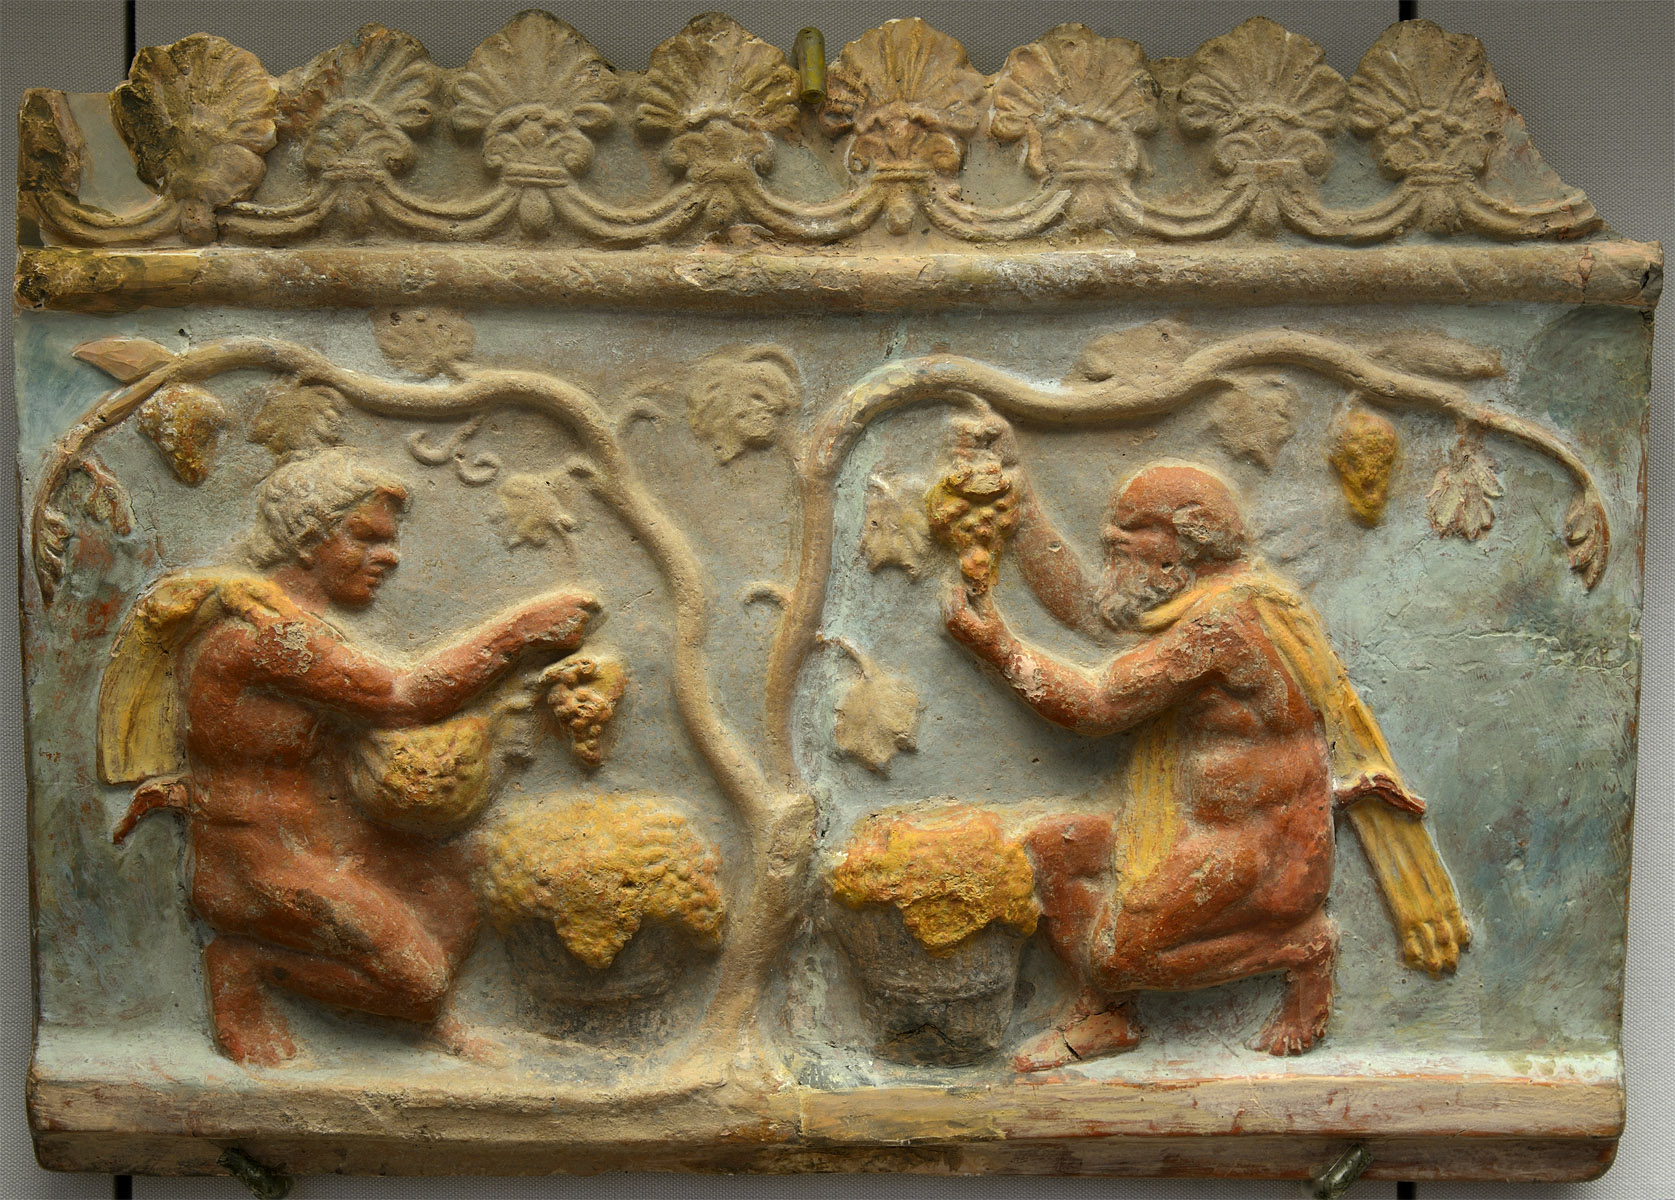 Campana plaque with vintage scene. Terracotta, paint. First half of 1st cent CE. Inv. No. II 1a 195. Moscow, the Pushkin Museum of Fine Arts